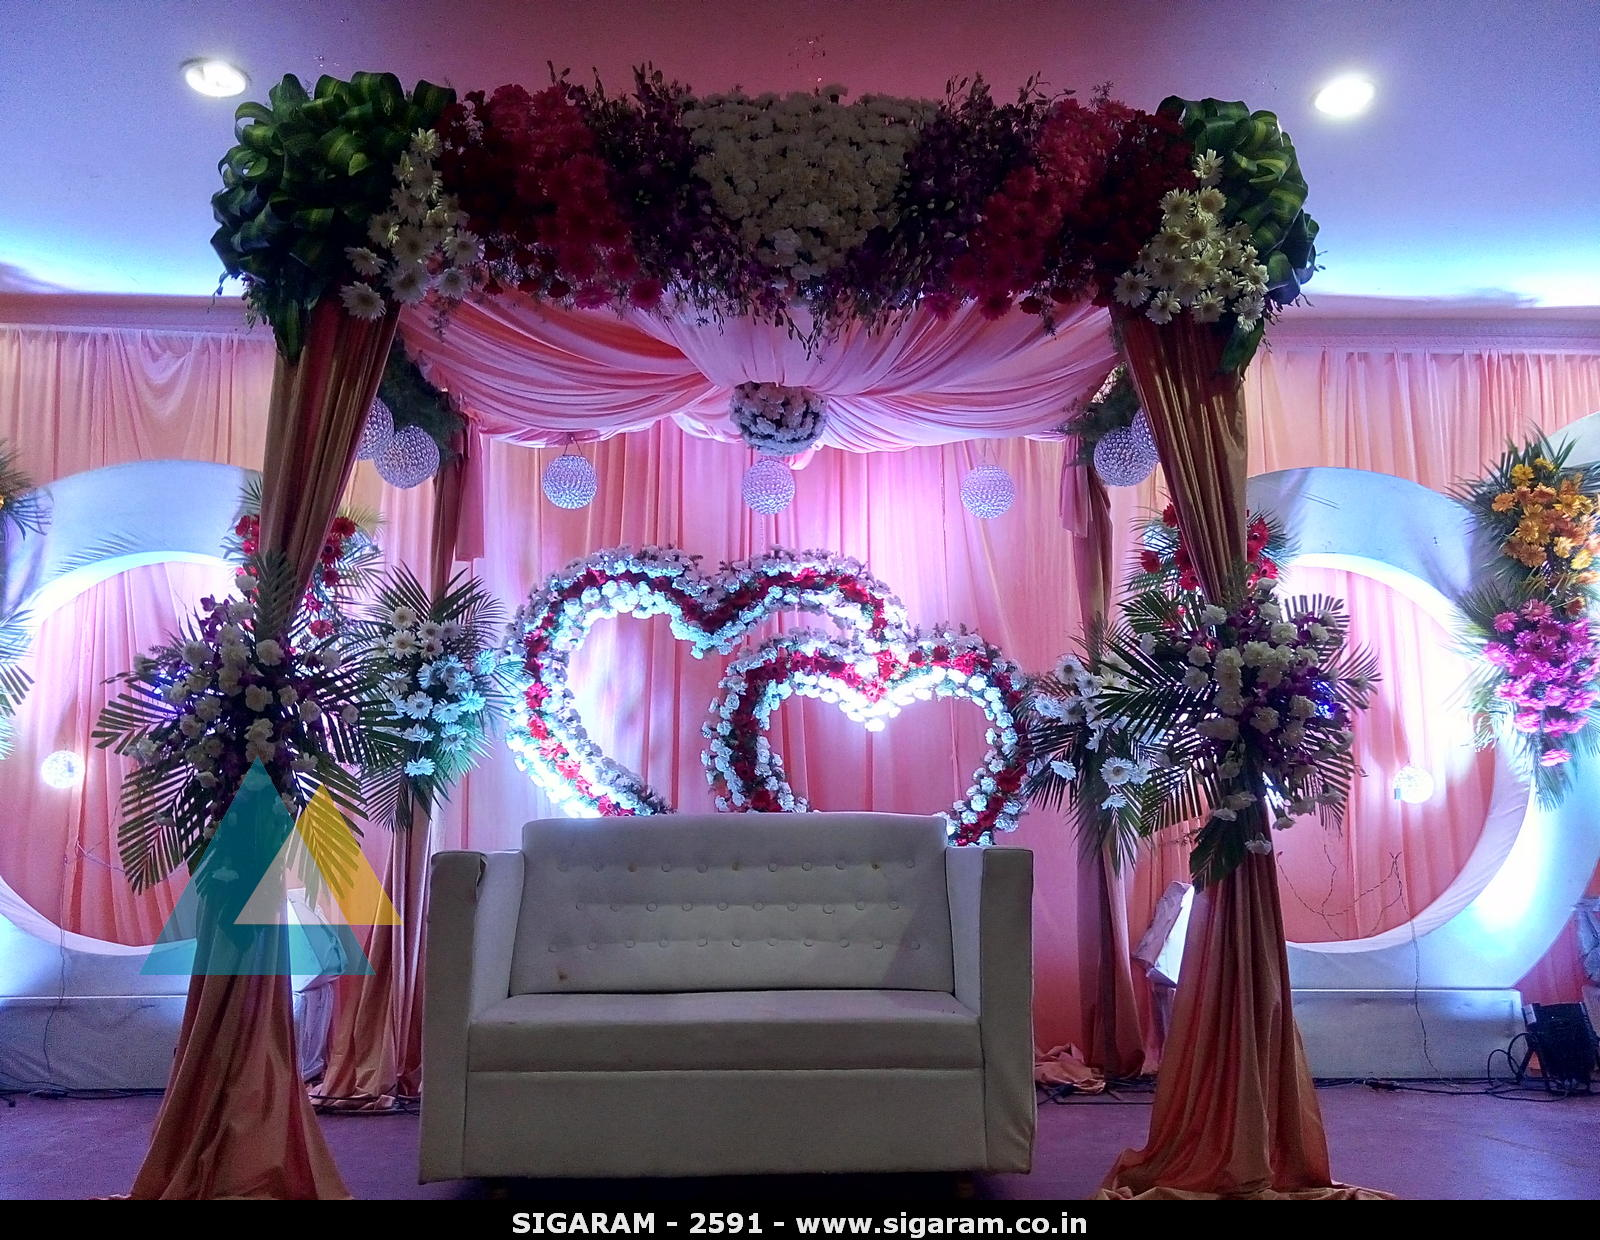 Wonderful Wedding Reception Decoration At Subalakshmi Thirumana Mahal, Cuddalore